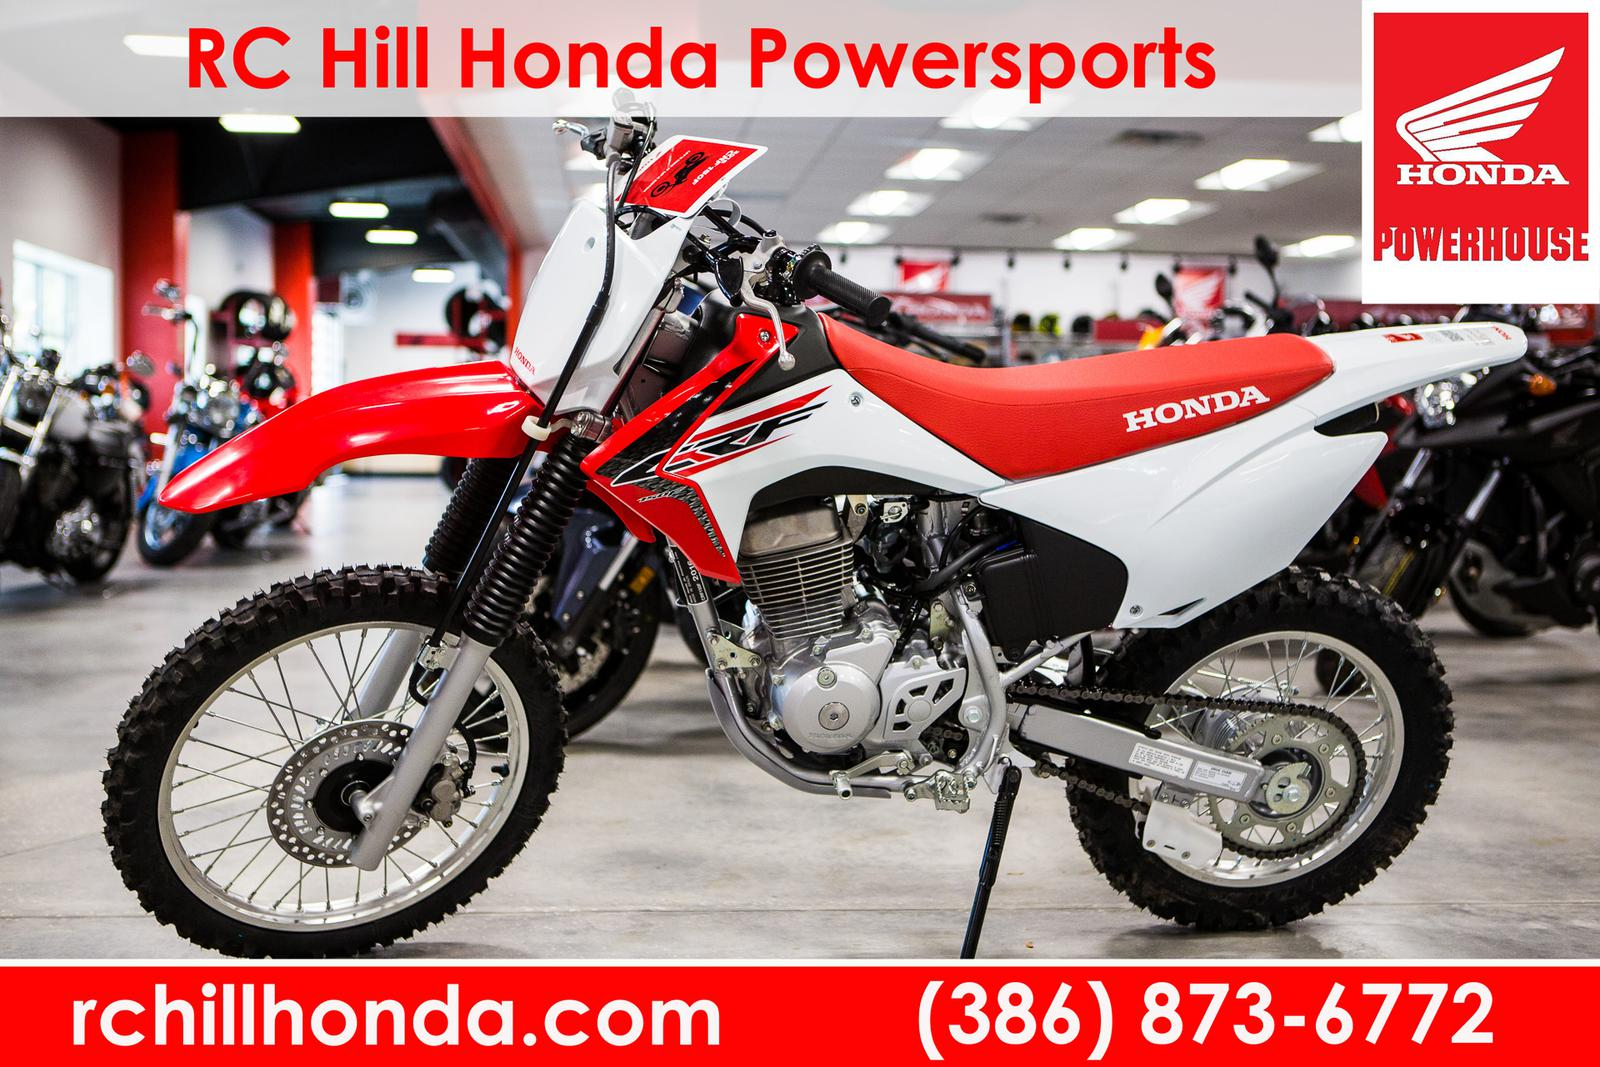 New Dirt Bikes And Scooters Rc Hill Honda Powersports Deland Fl Crf 150 2017 Crf150f